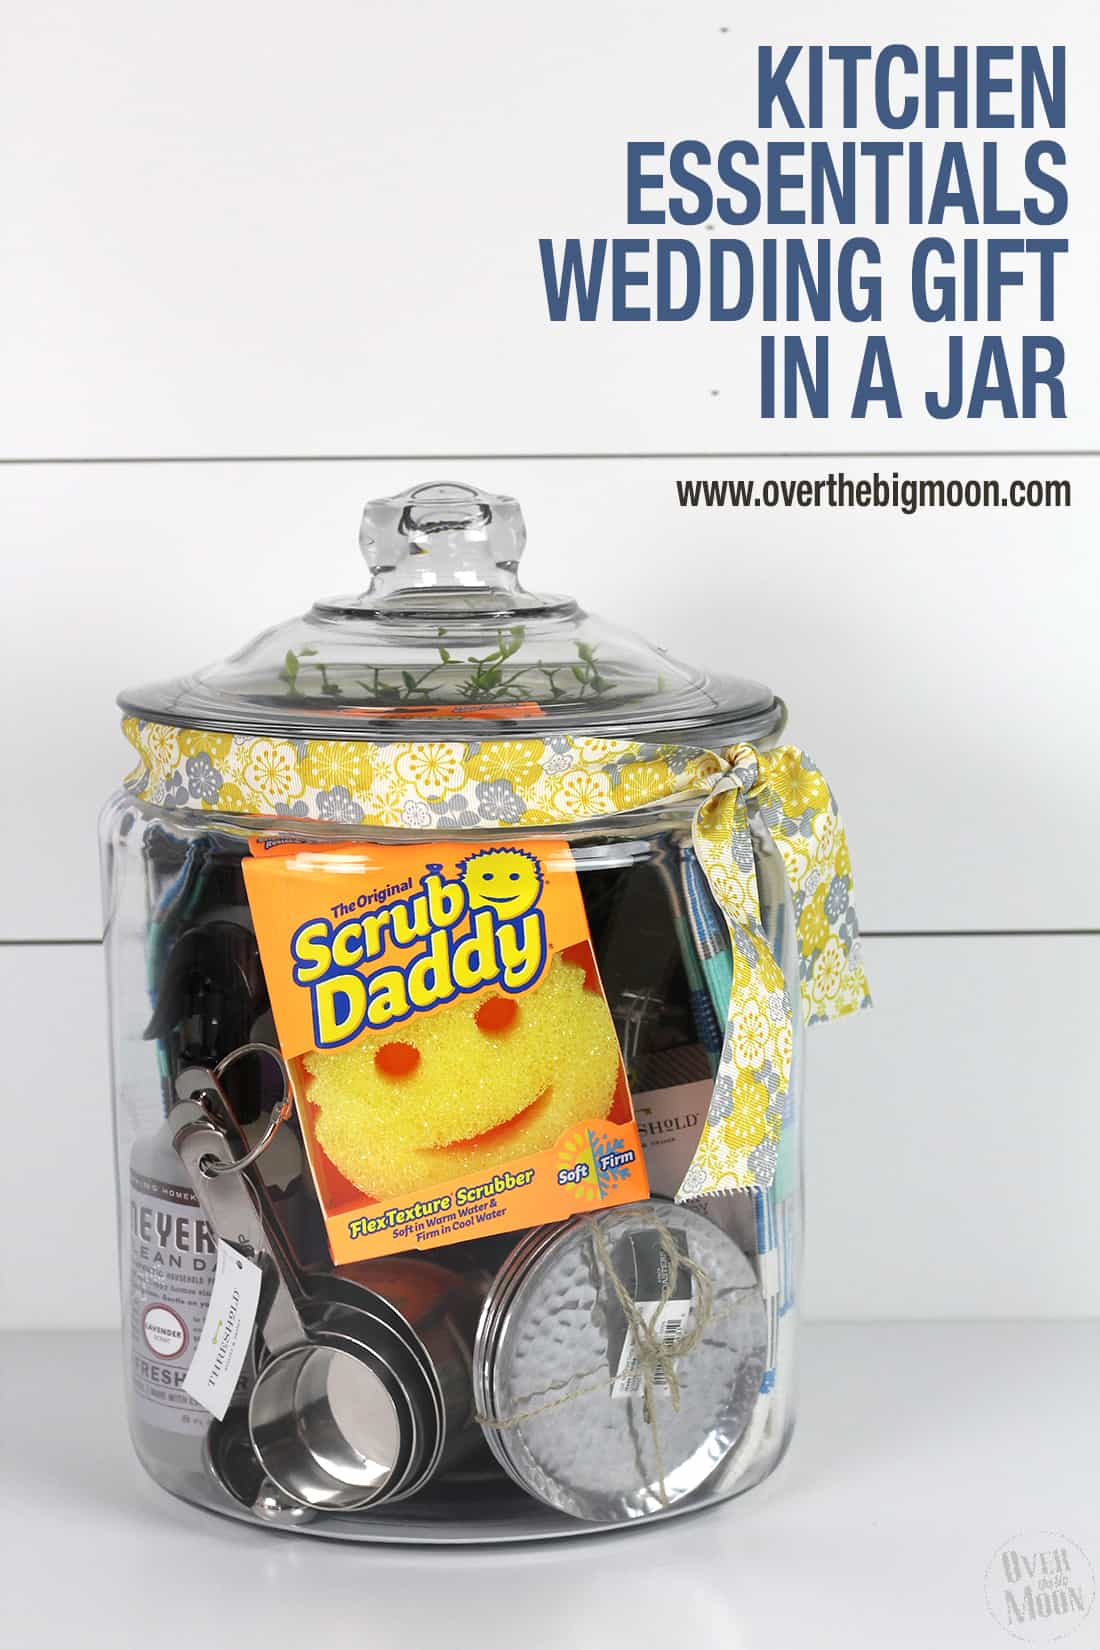 Super fun Kitchen Essentials Gift in a Jar Idea from www.overthebigmoon.com!